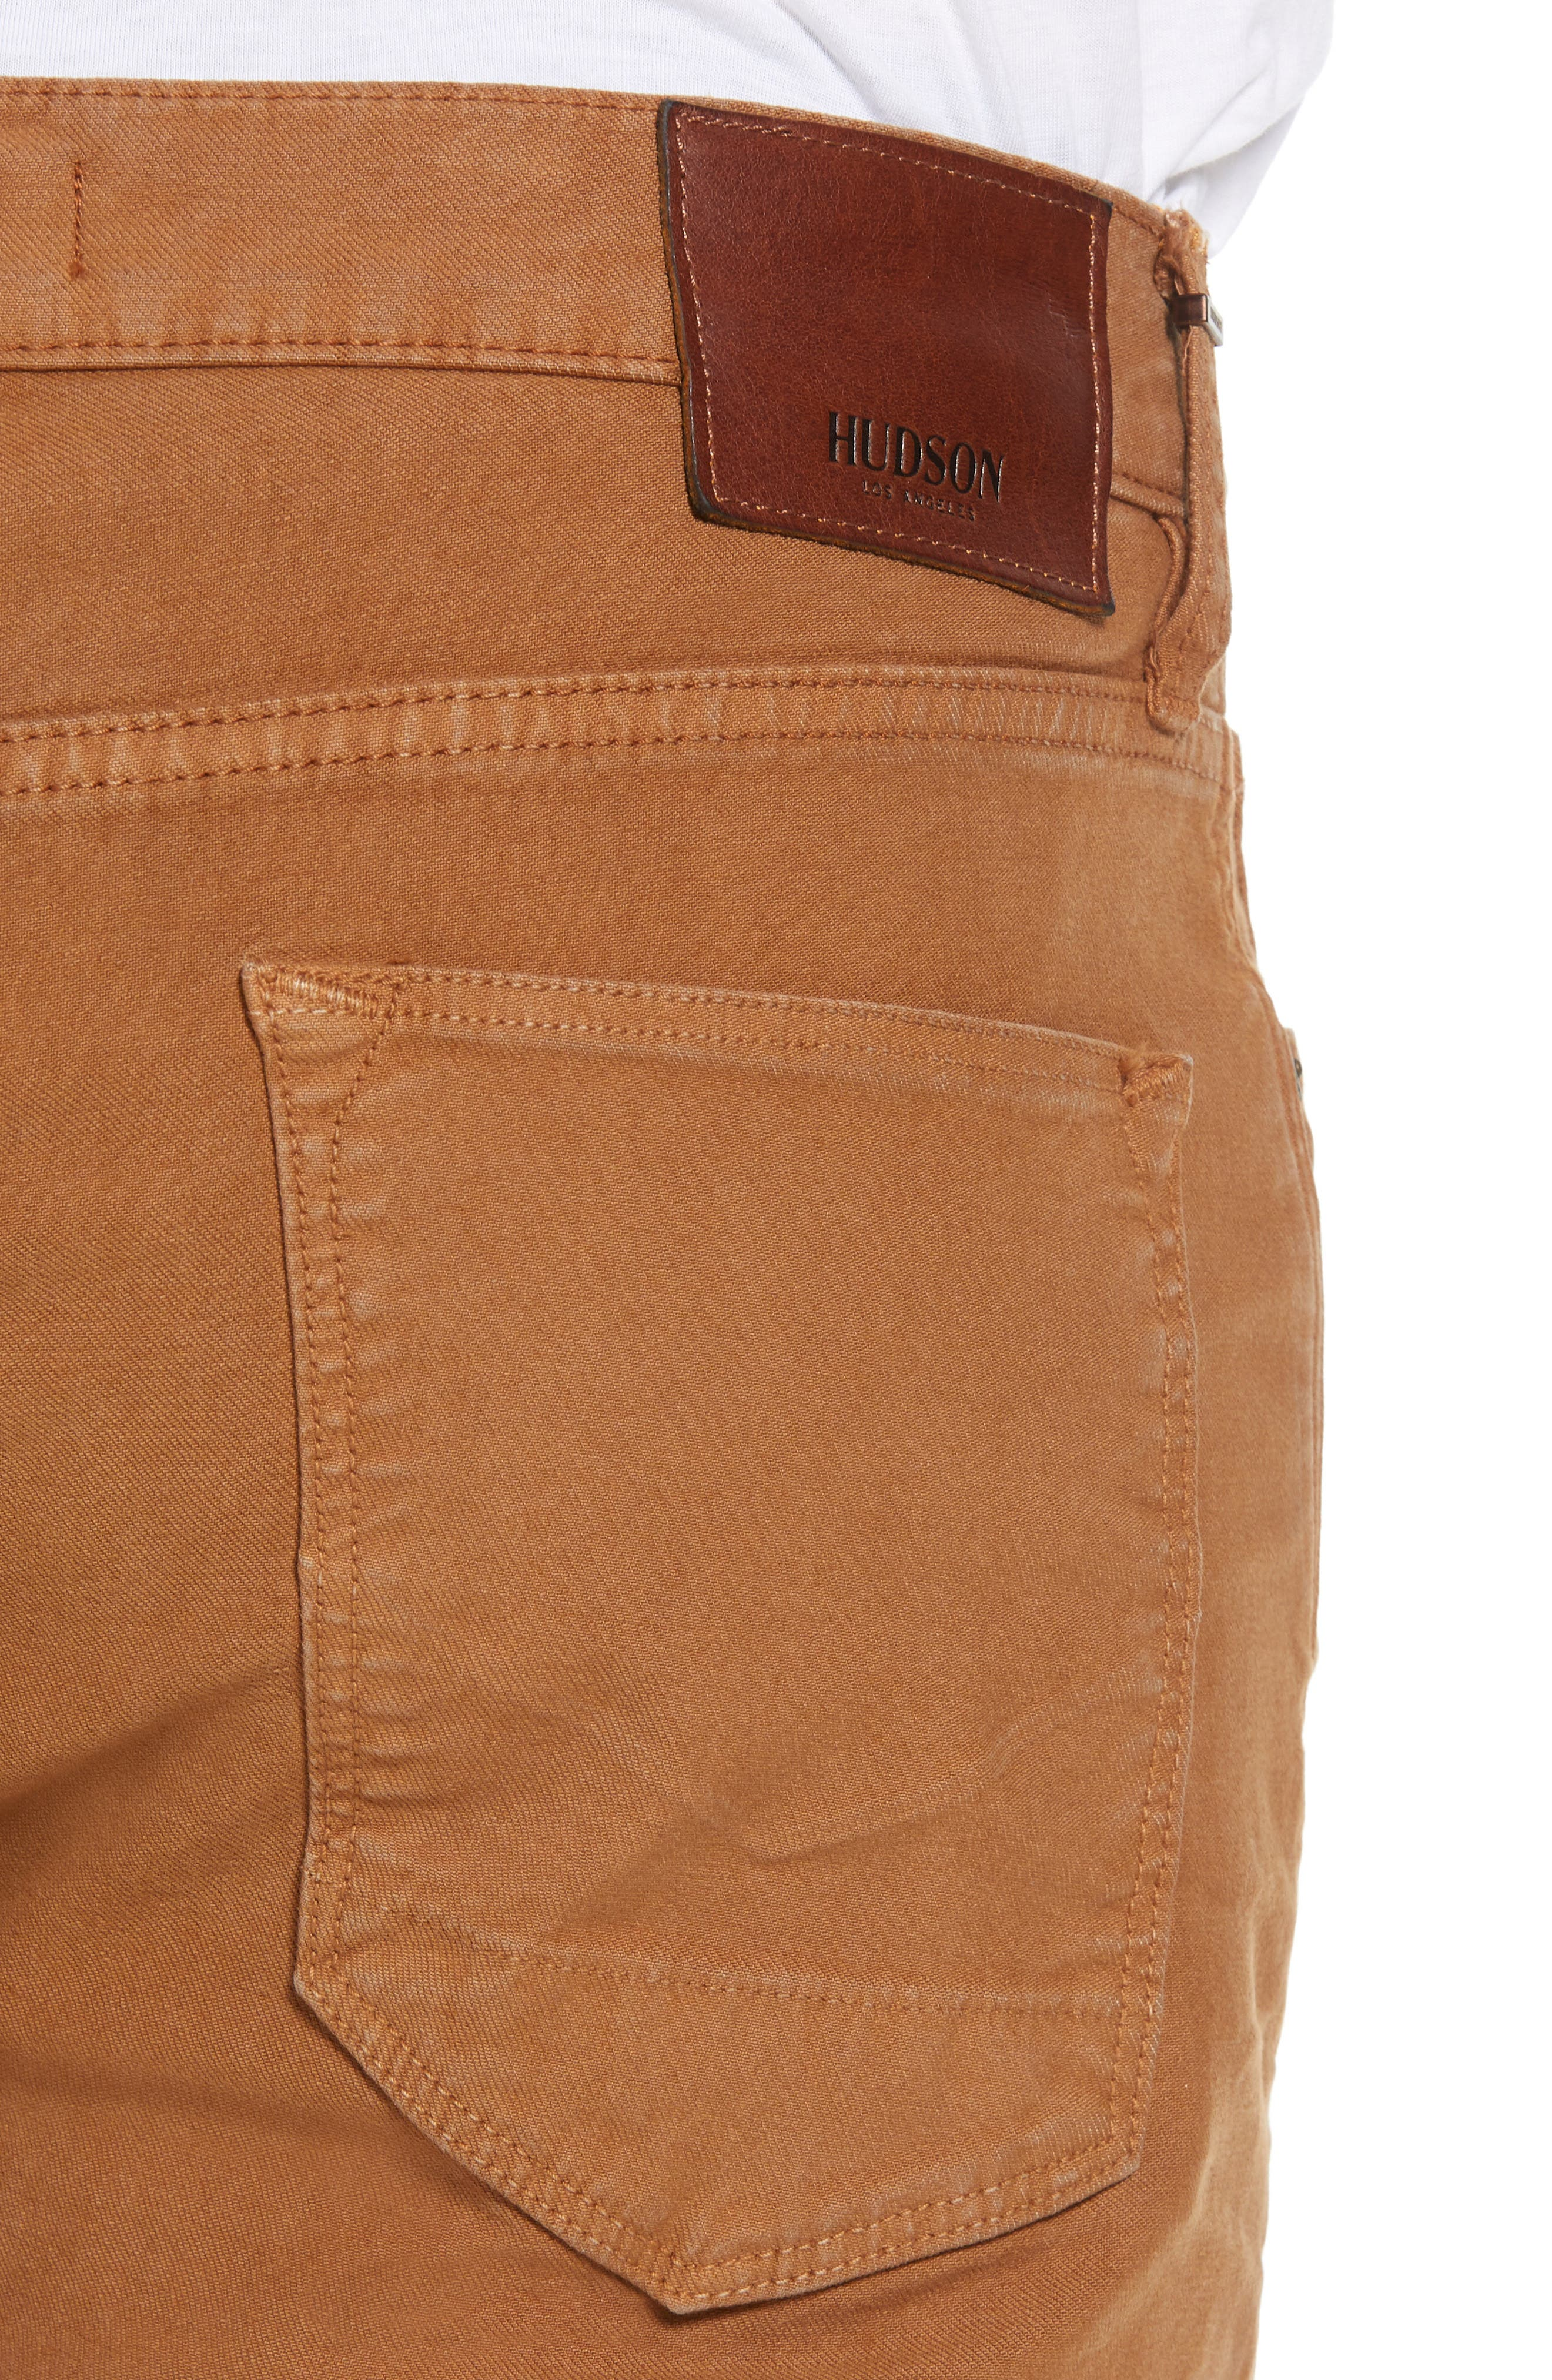 Axl Skinny Fit Jeans,                             Alternate thumbnail 4, color,                             SIENNA